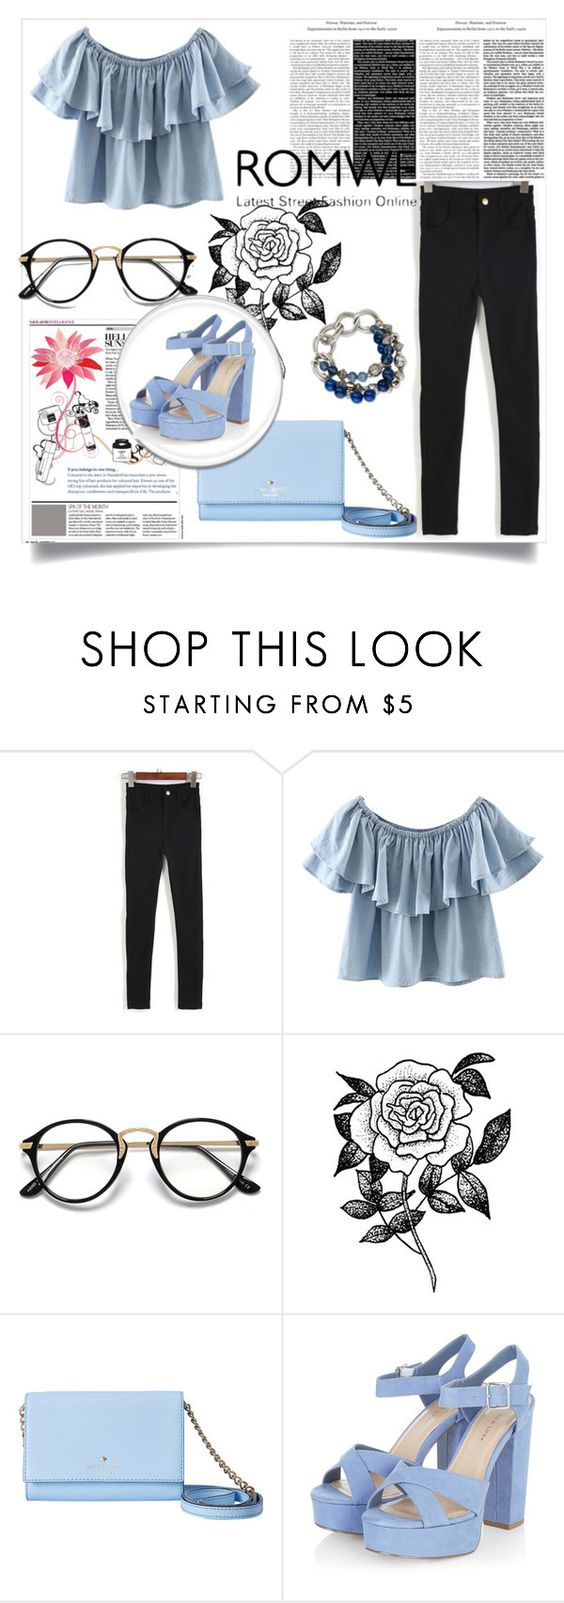 """ROMWE!"" by zenabezimena ❤ liked on Polyvore featuring Chicnova Fashion, Forever 21 and Kate Spade"